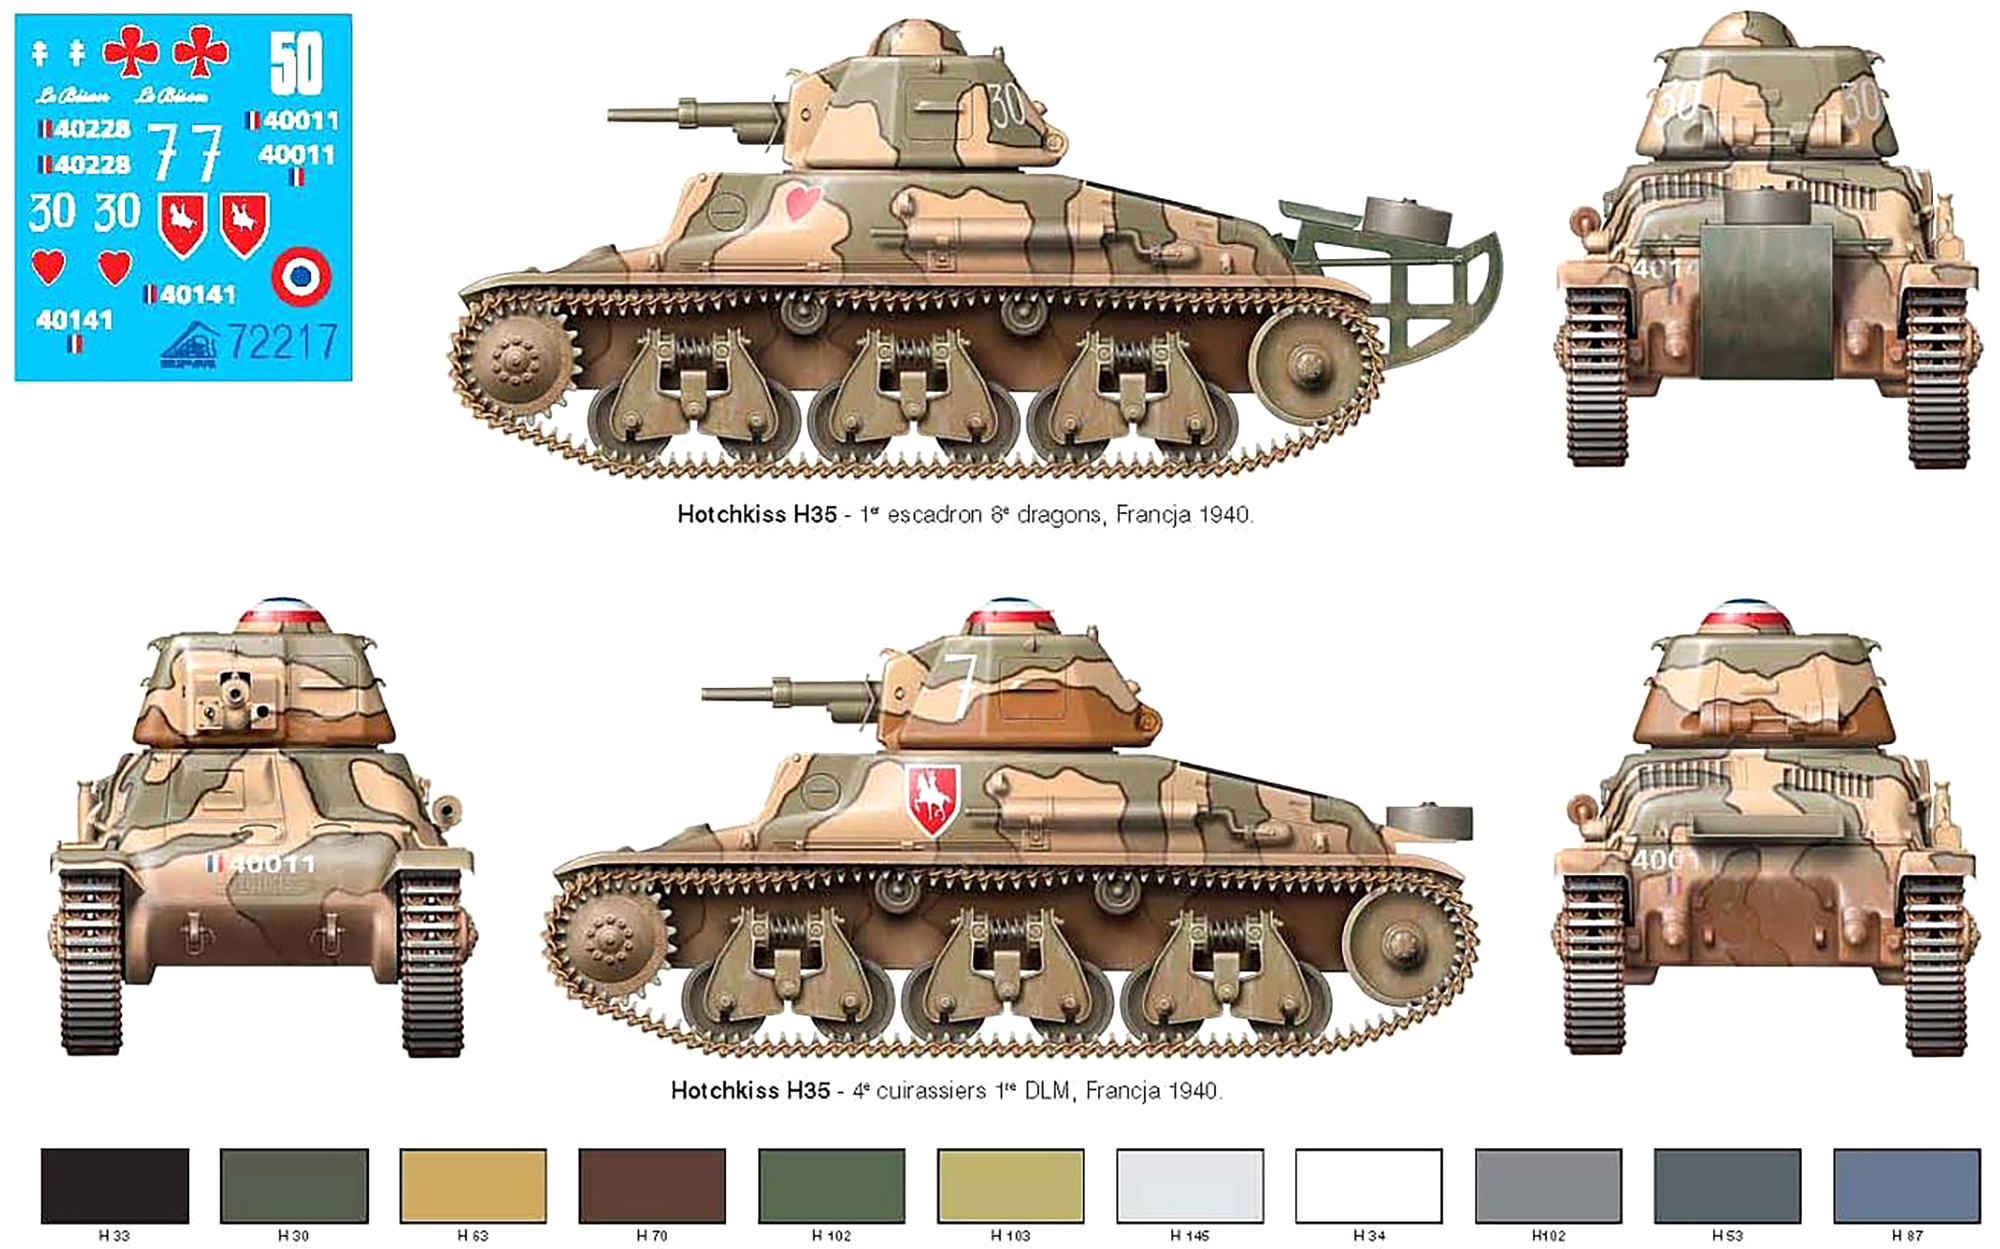 French Army Hotchkiss H35 profile during battle of France 1940 web 0B